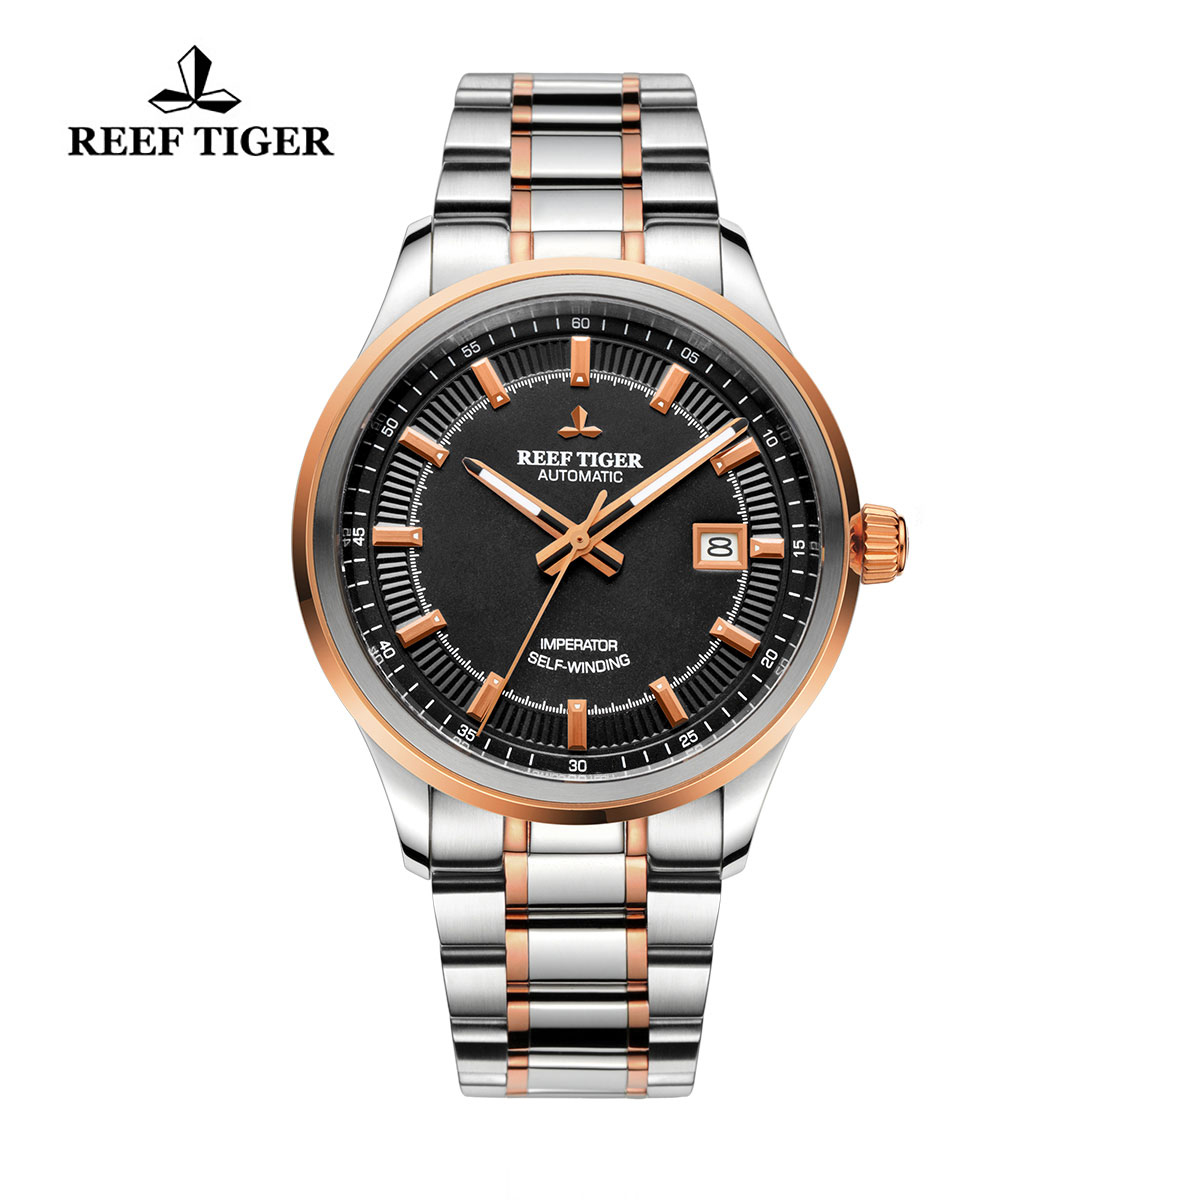 Reef Tiger Imperator Dress Watch Automatic Steel/Rose Gold Black Dial RGA8015-PBT